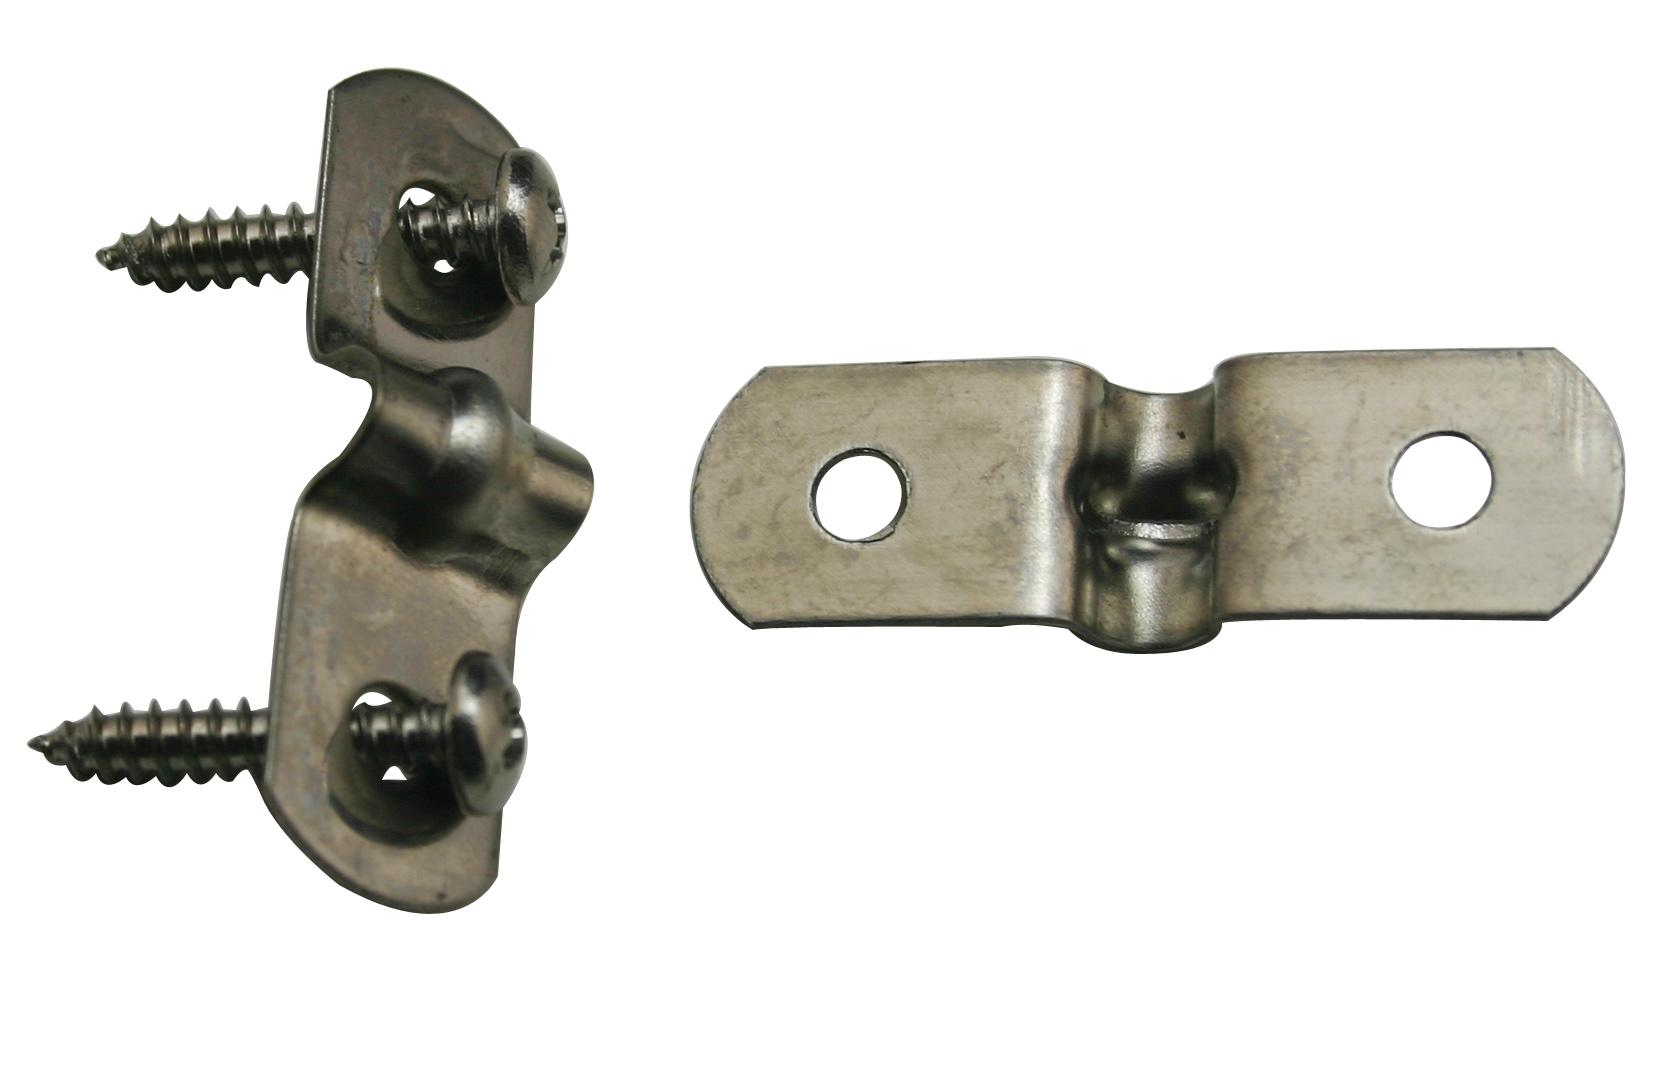 Steel Pipe Clips : Stainless steel inches diameter tension clip